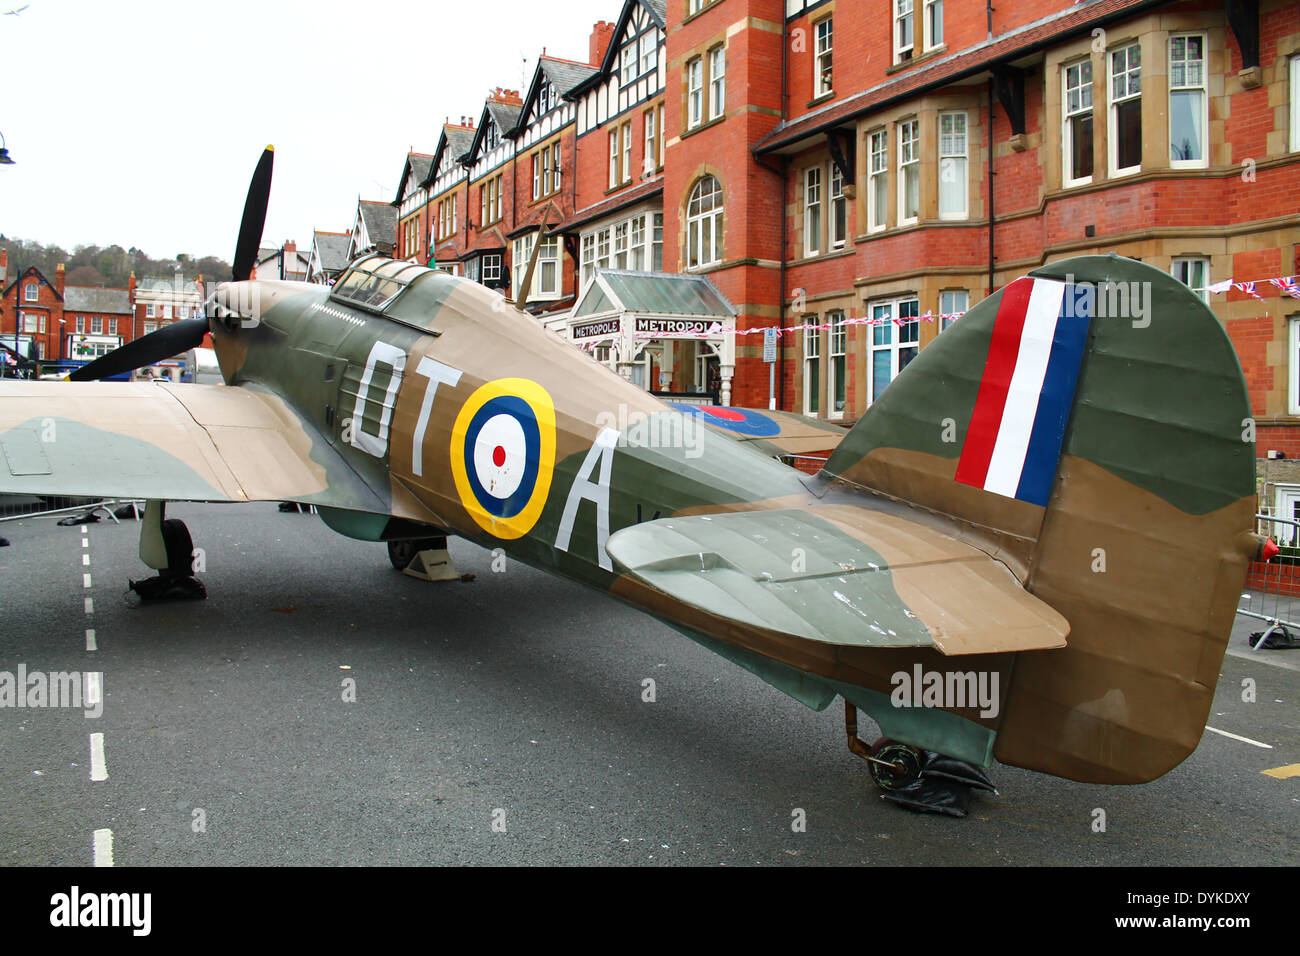 A hurricane plane landed in the road - Stock Image